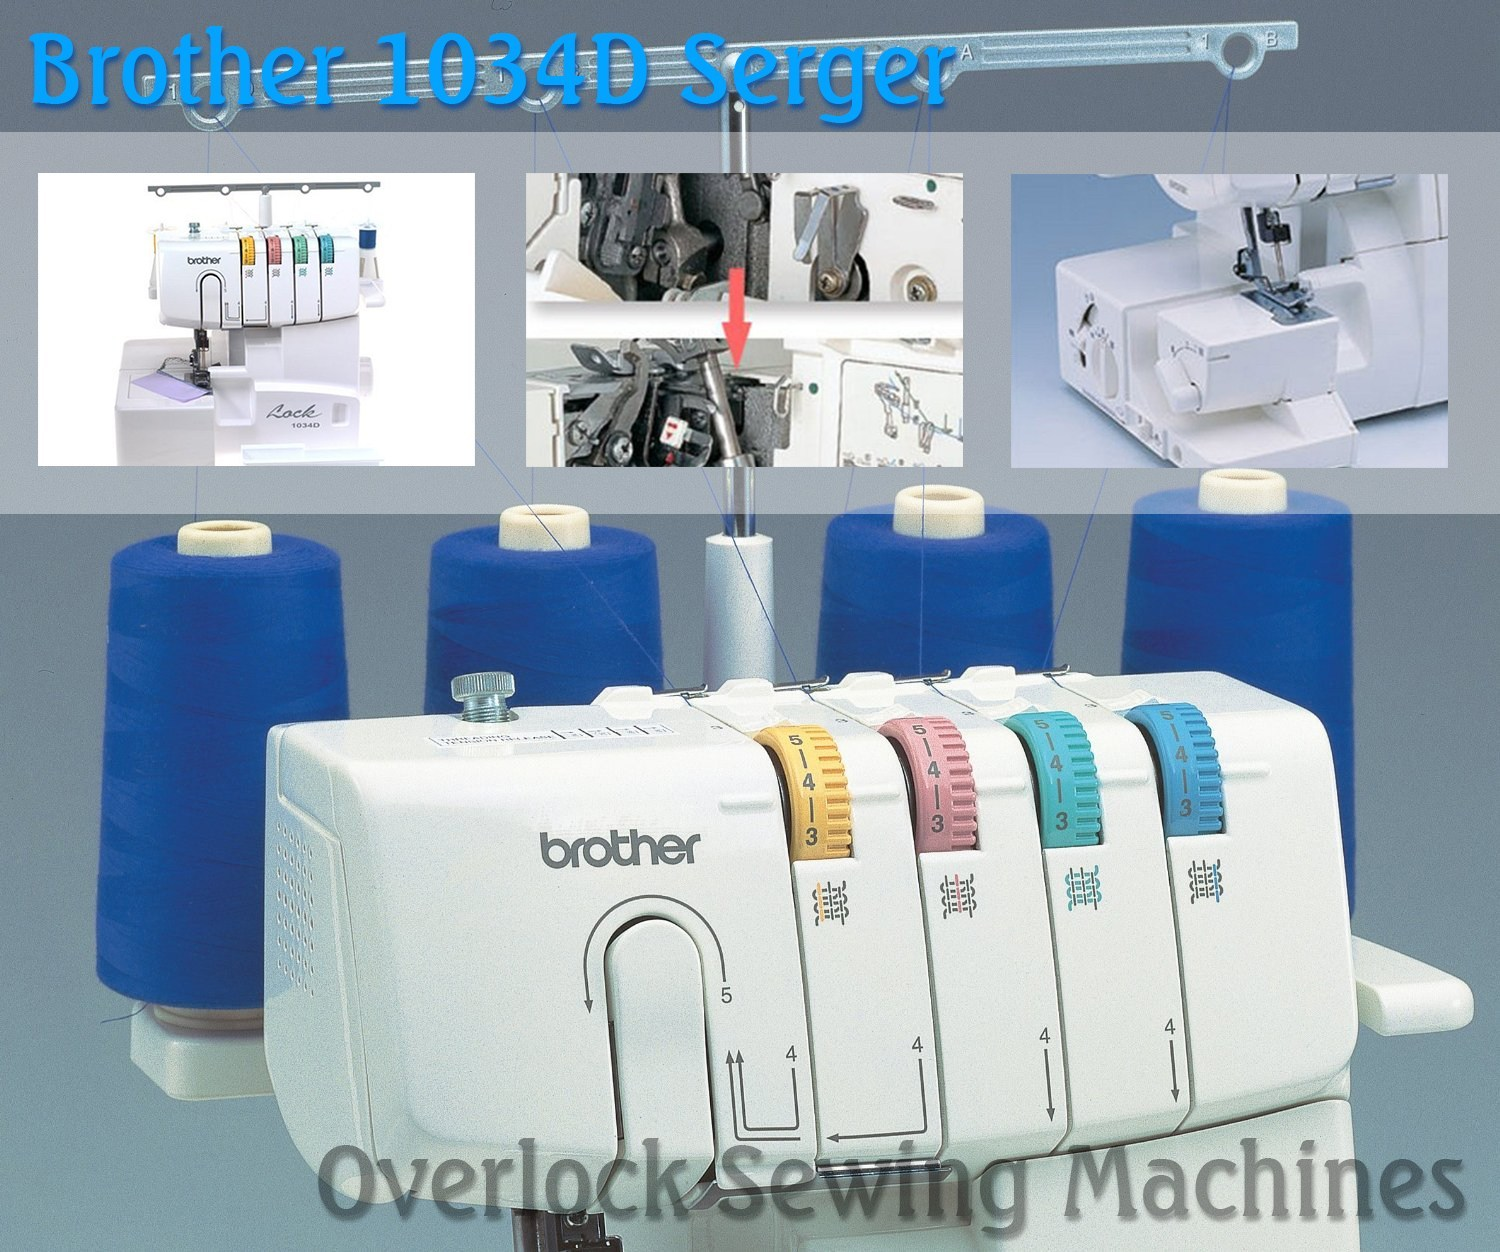 Brother 1034D 3 or 4 Thread Serger (Image: Amazon)